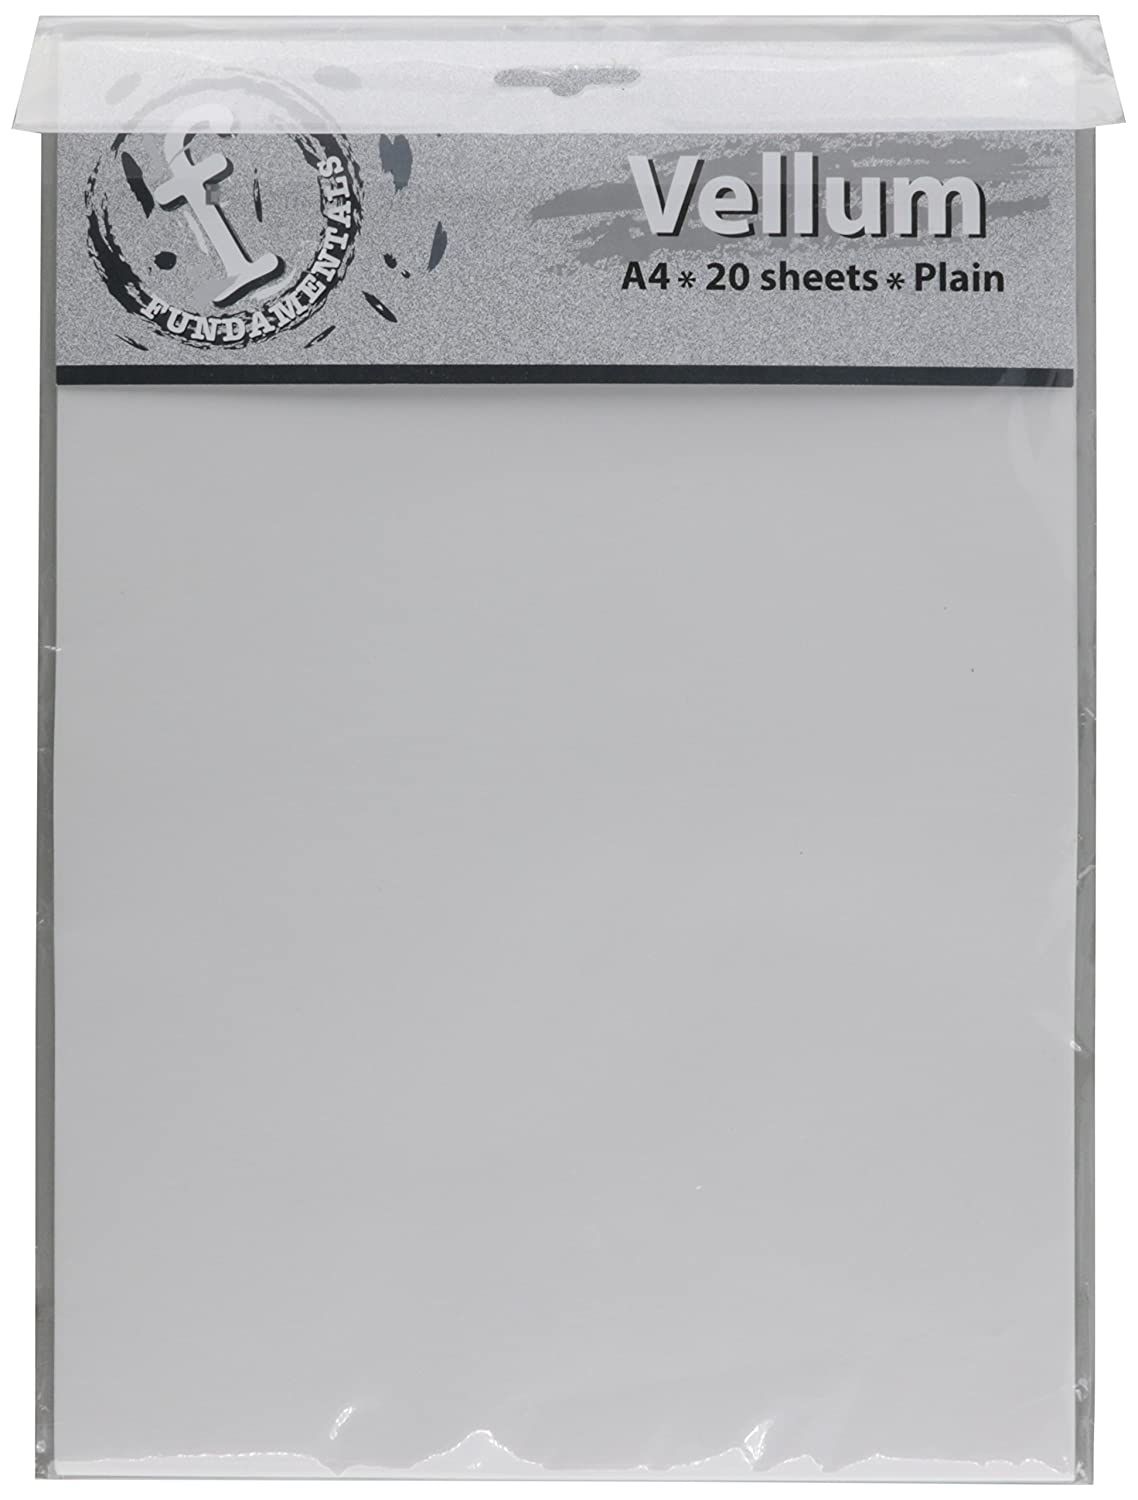 Ruby Rock-It-Fundamentals A4 Vellum Sheets, 11.7 by 8.3-Inch, Plain, 12-Pack FV63